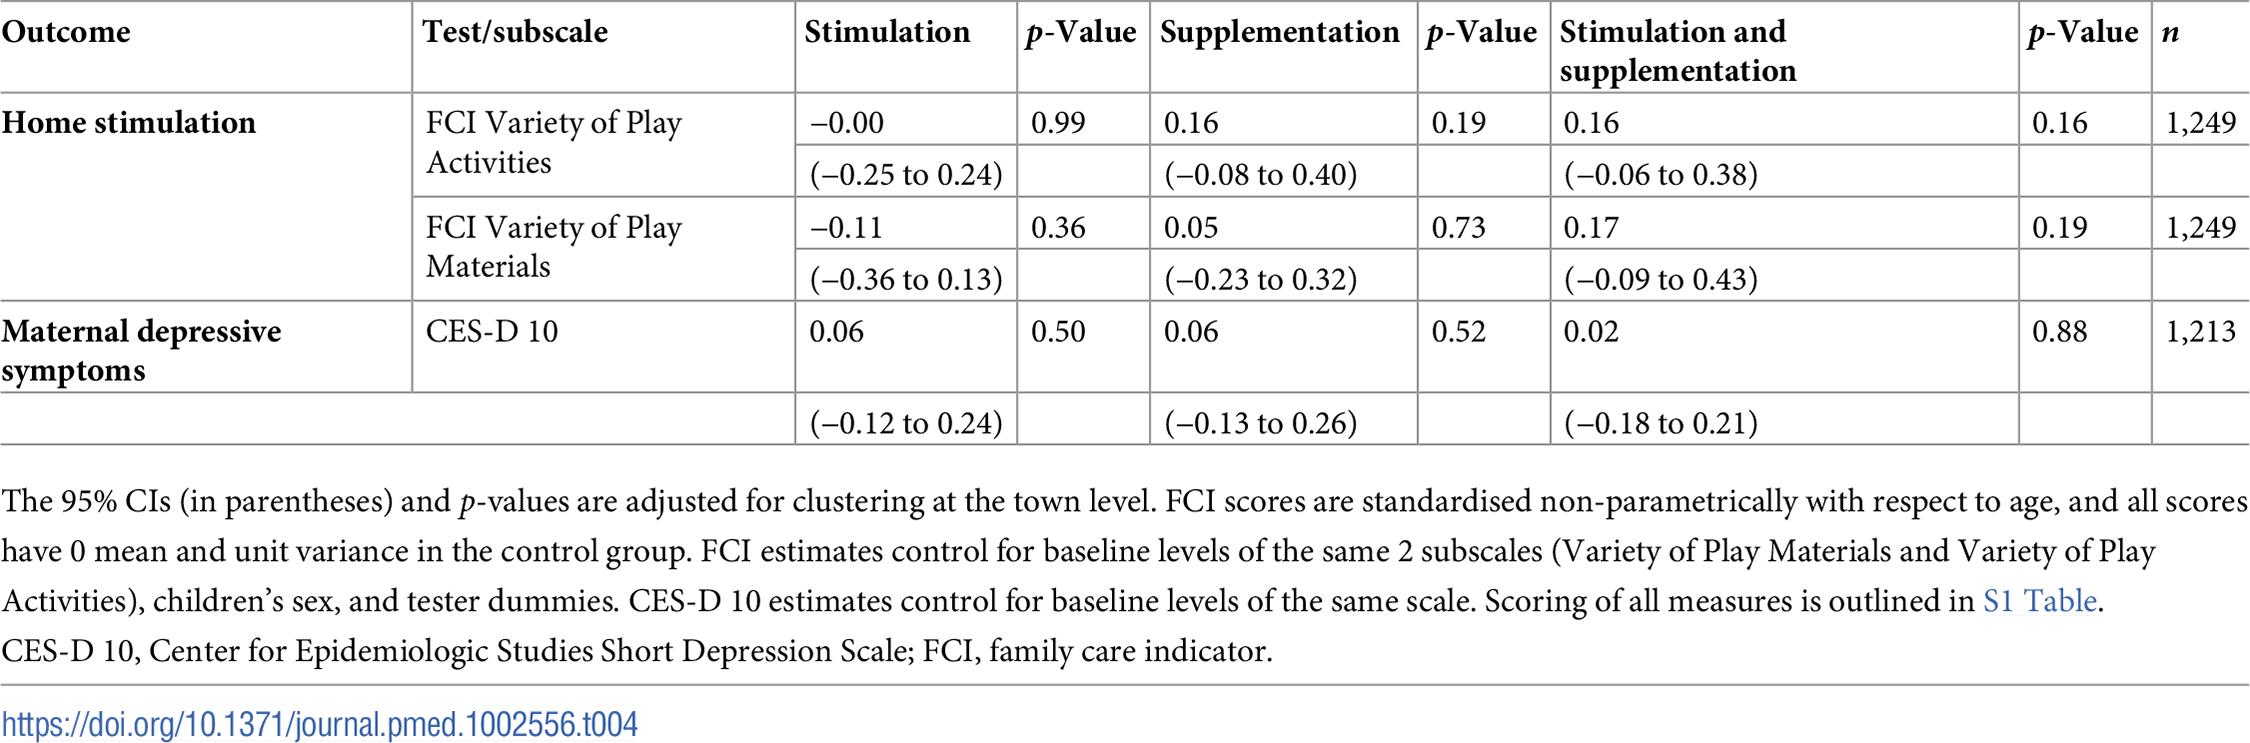 Estimated treatment effects for stimulation in the home environment and maternal depressive symptoms.